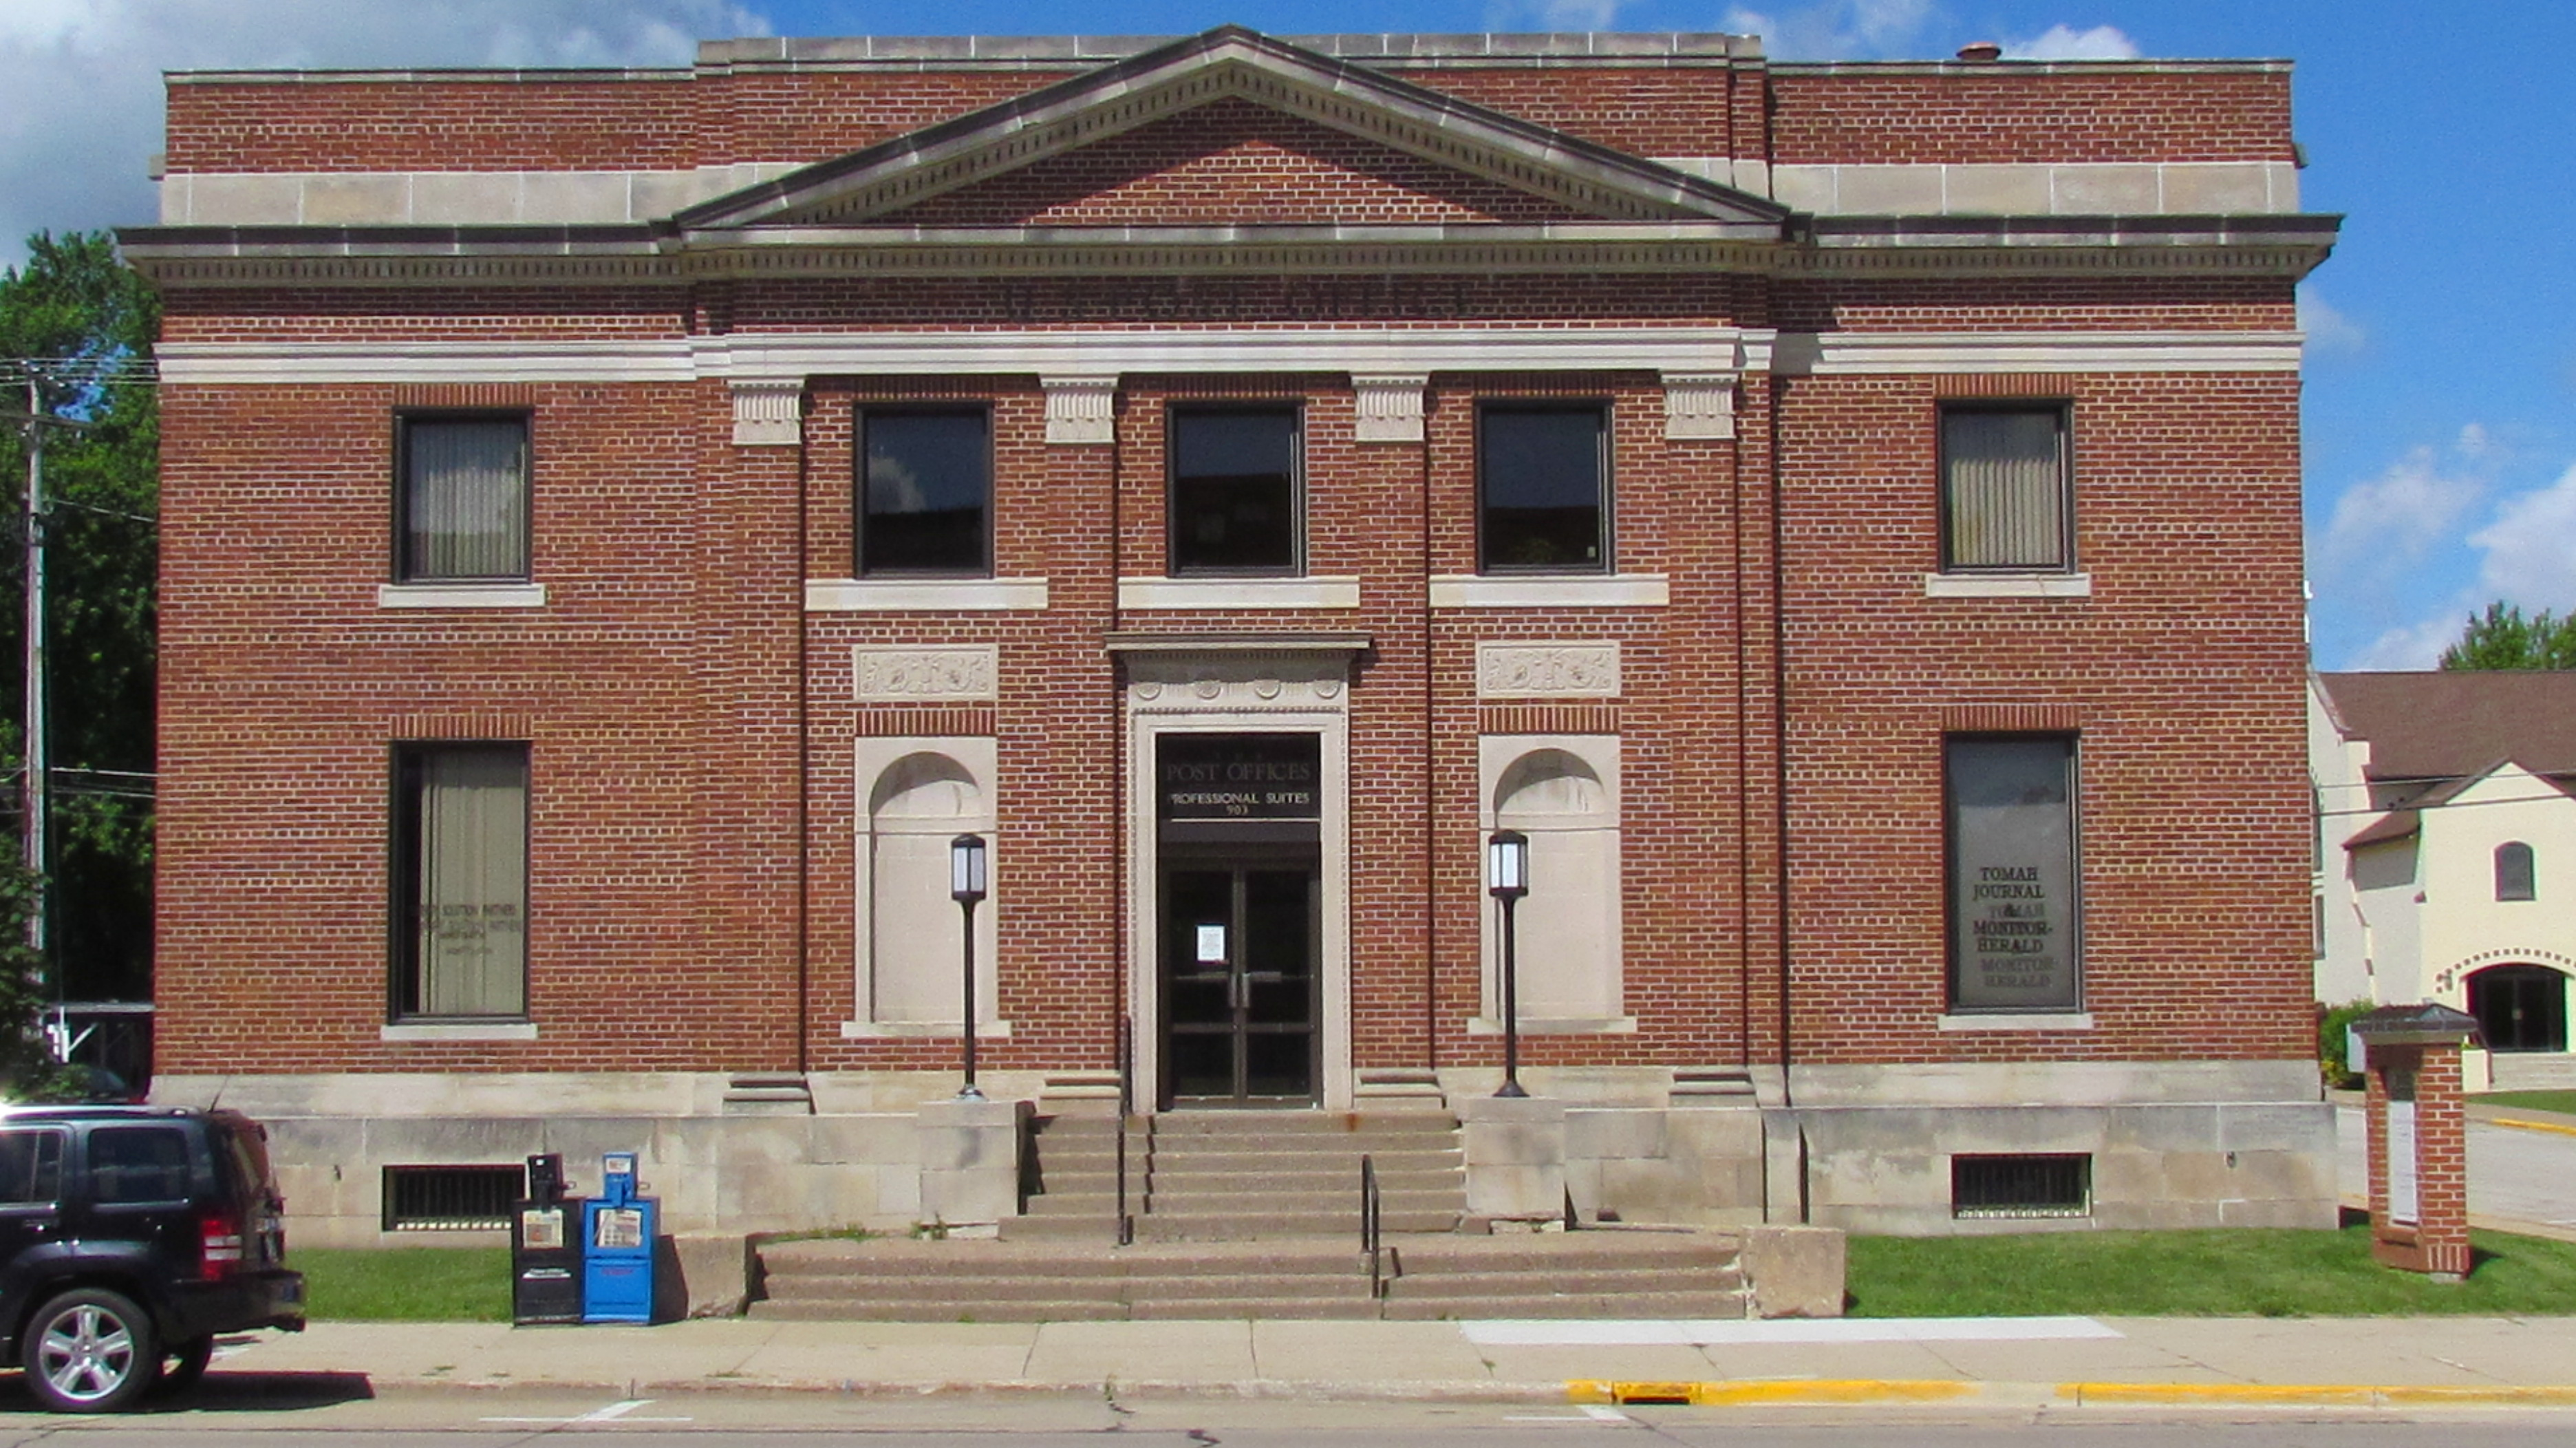 Tomah Post Office